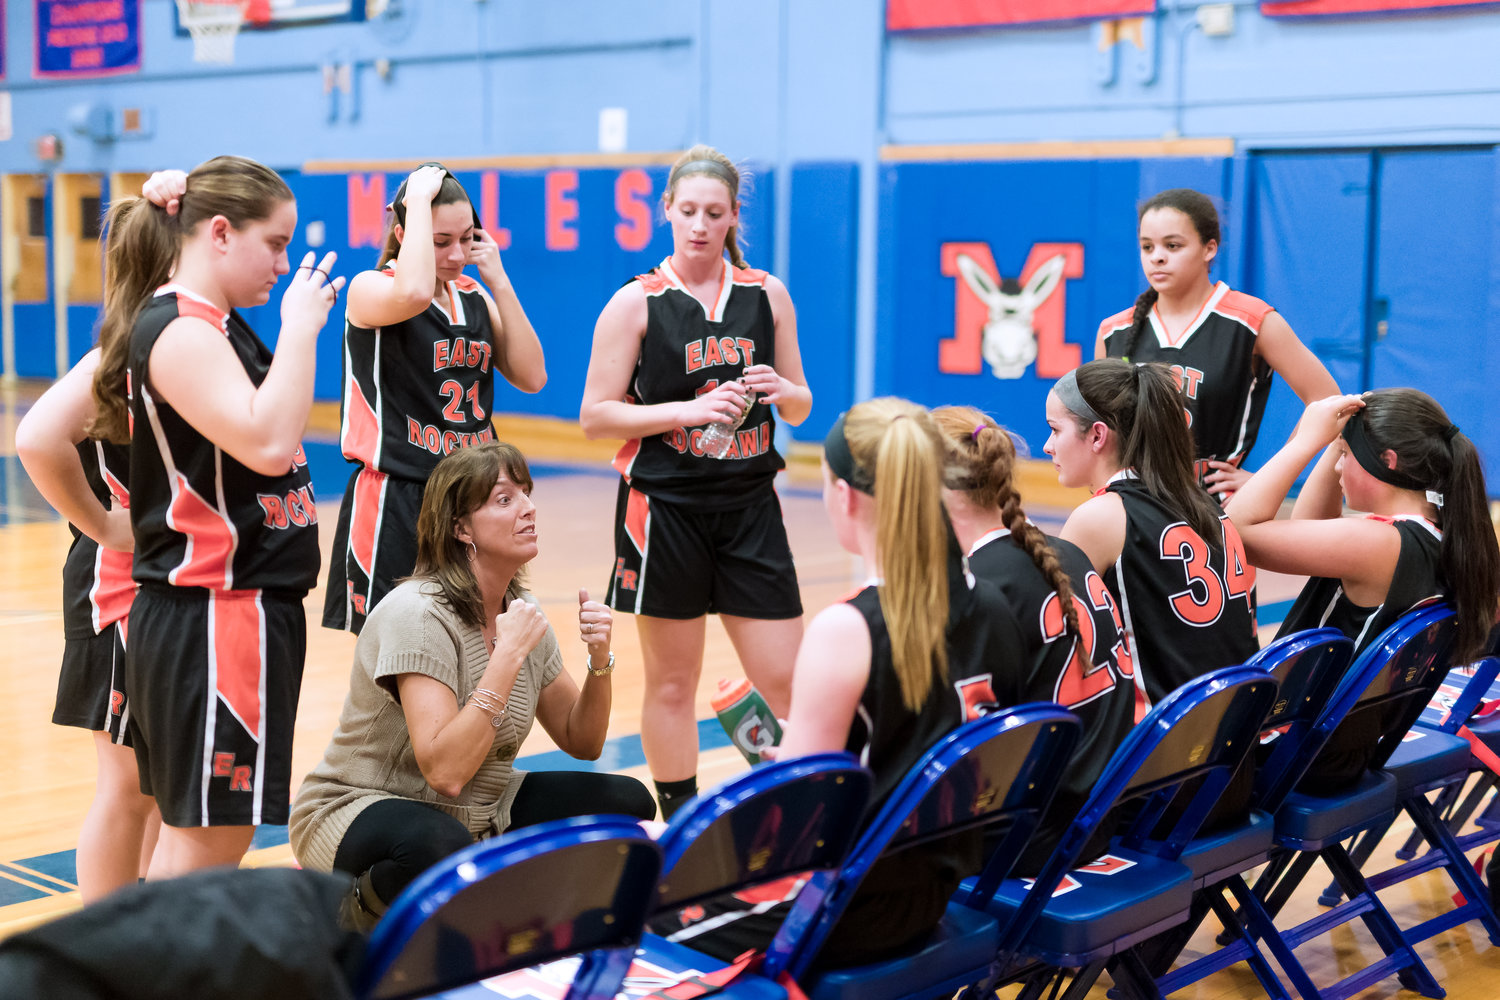 East Rockaway girls' varsity basketball coach Karin Leary recently retired after 19 seasons, during which her teams won 209 games and six county championships. Her former players said she had a profound impact on them, on and off the court.